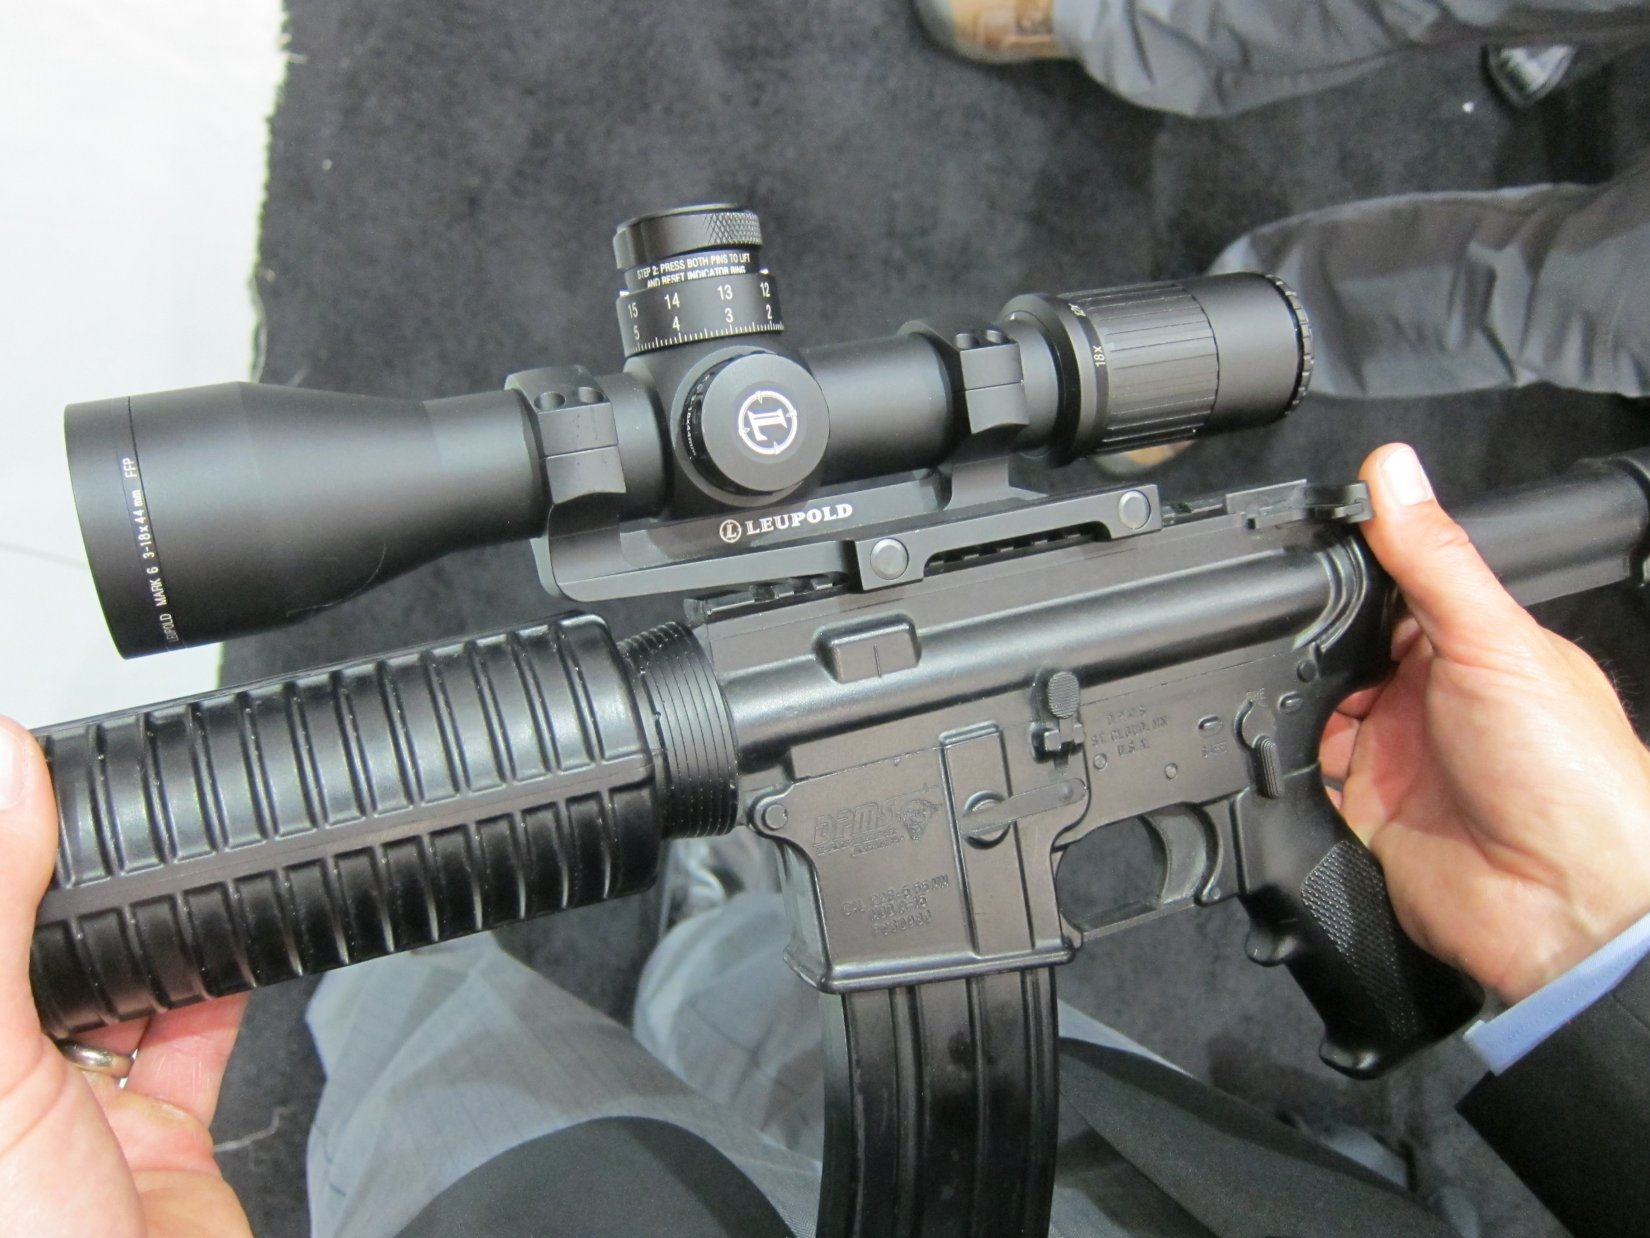 Leupold Mark 6 3 18x44mm 34mm Riflescope First Focal Plane Tactical Scope with Horus H59 Improved Sniper Reticle NDIA Joint Armaments Conference 2012 DefenseReview.com DR 1 Leupold Mark 6 3 18x44mm (34mm) Riflescope: Game Changer First Focal Plane Tactical Rifle Scope/Hunting Scope with Horus H58 Illuminated Gridded Reticle (or TReMoR2 or CMR W Reticles) for U.S. Military Special Operations Forces (SOF) Assaulters/Snipers, Civilian Tactical Shooters and Hunters! (Videos!)